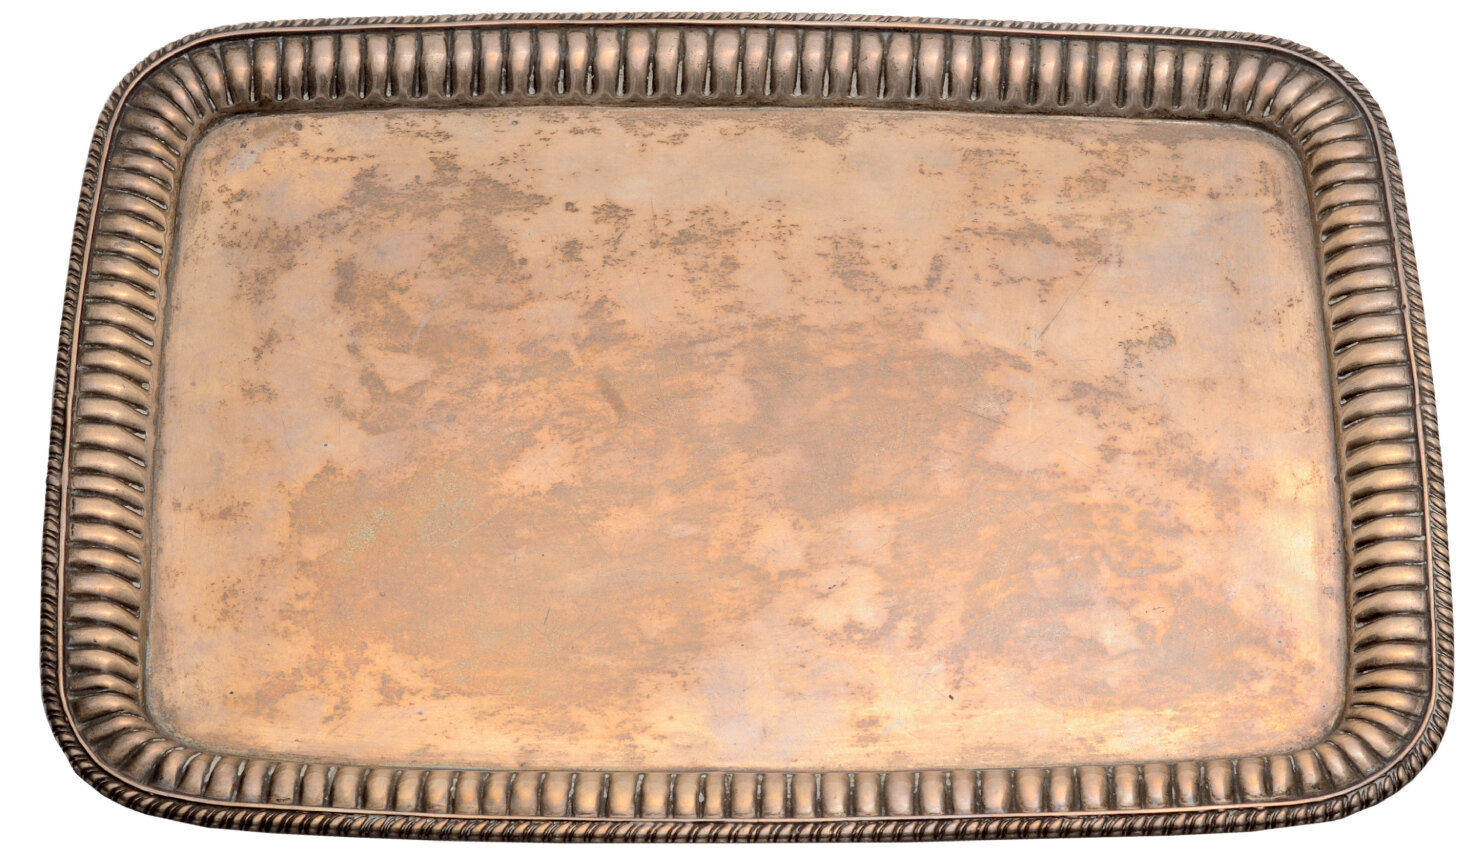 Lot 3600 - Rectangular silver service tray